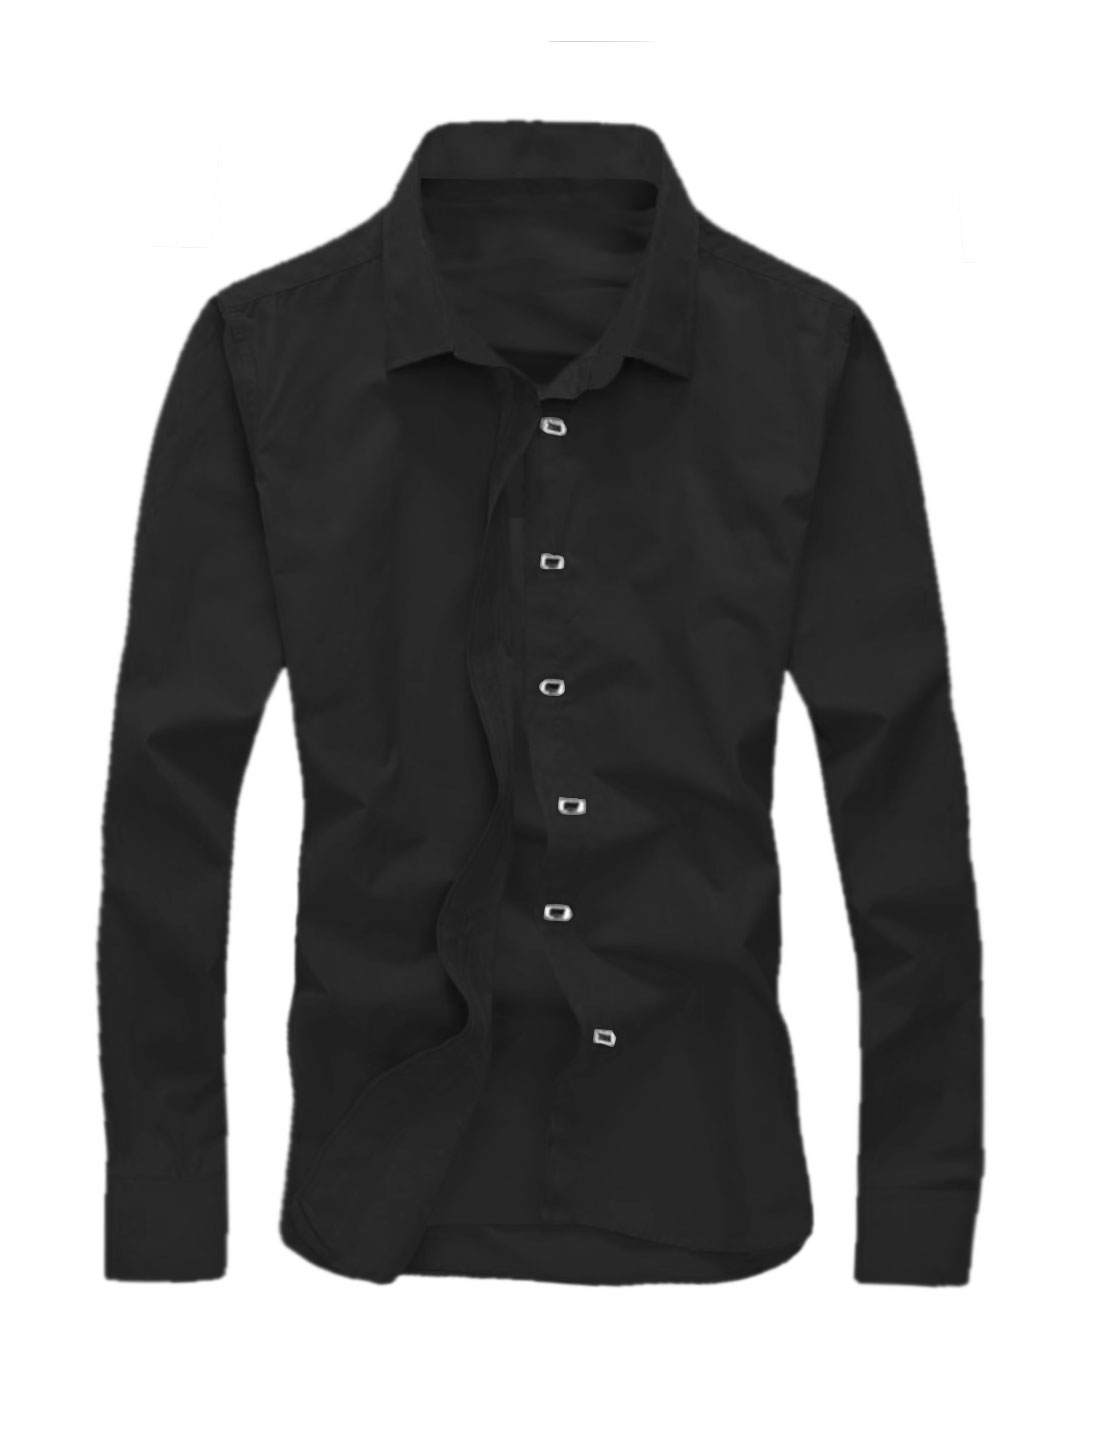 Men Point Collar Long Sleeves Snap Button Closed Casual Shirt Black M